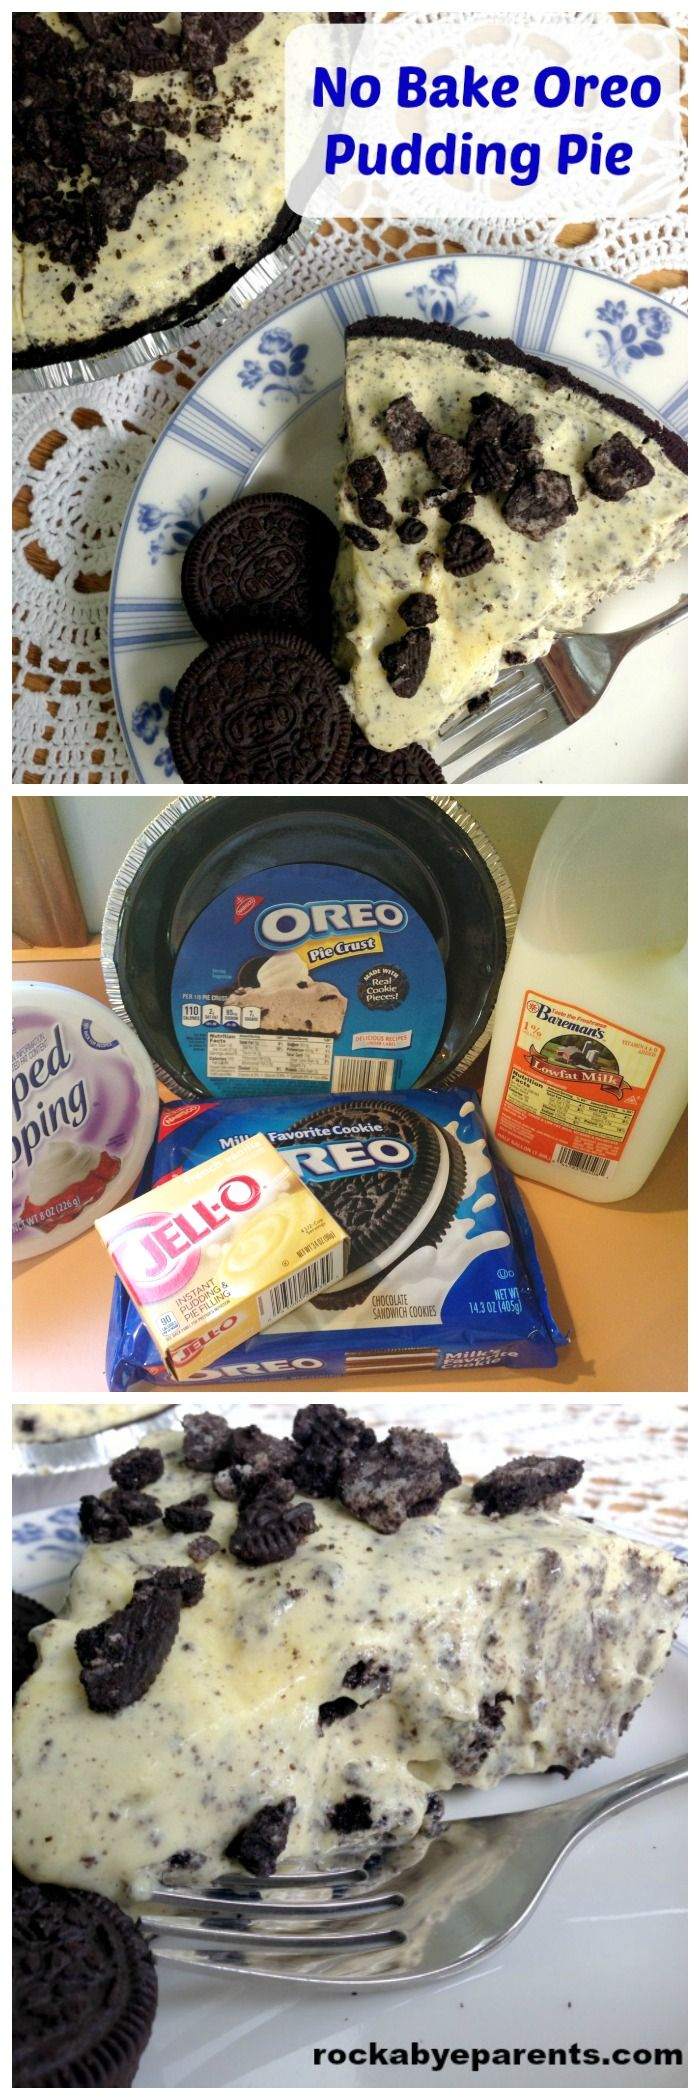 how to make pudding pie thicker